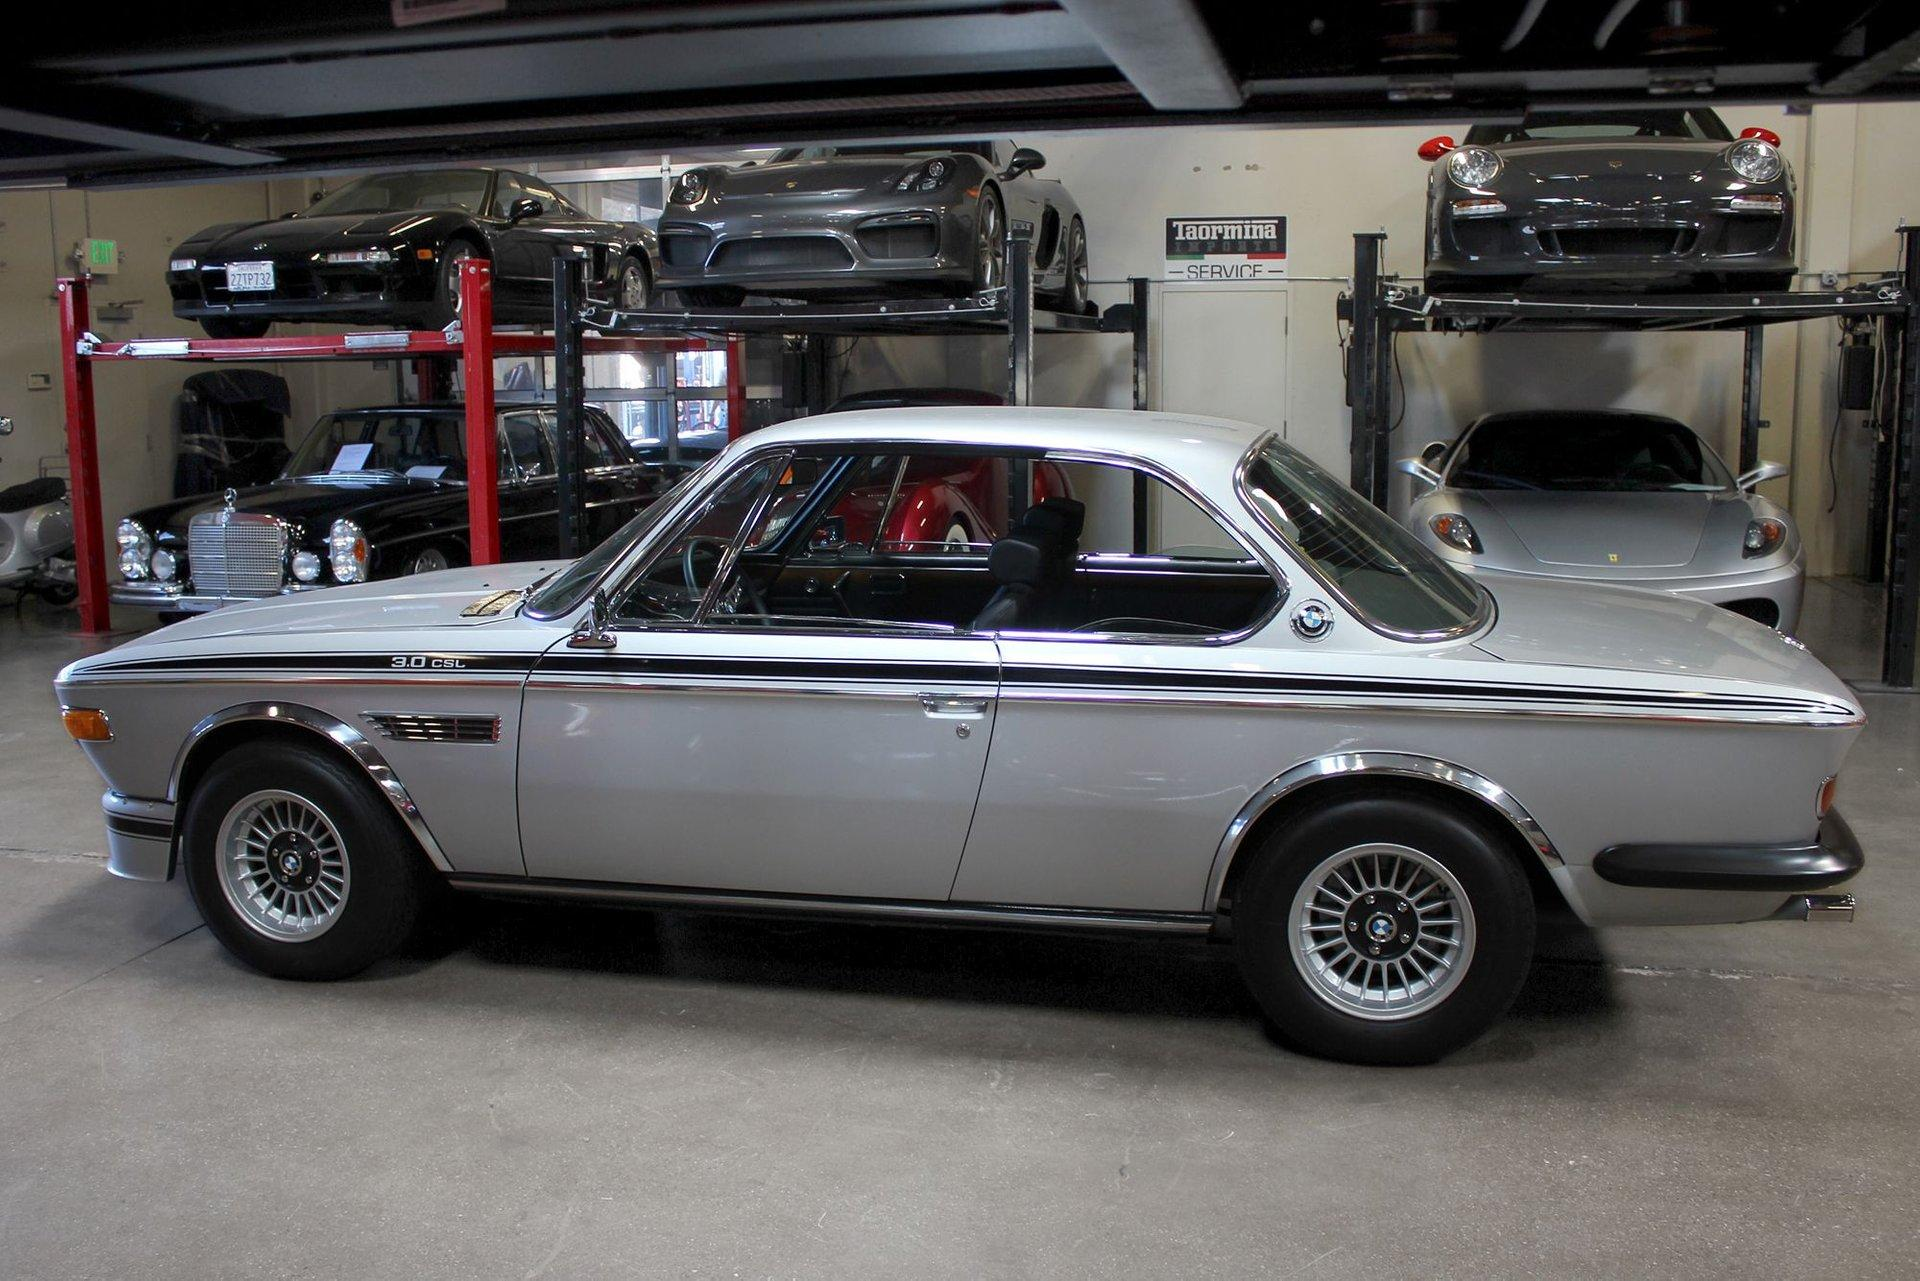 used 1973 bmw 3 0csl for sale 239 000 san francisco sports cars stock c19054 used 1973 bmw 3 0csl for sale 239 000